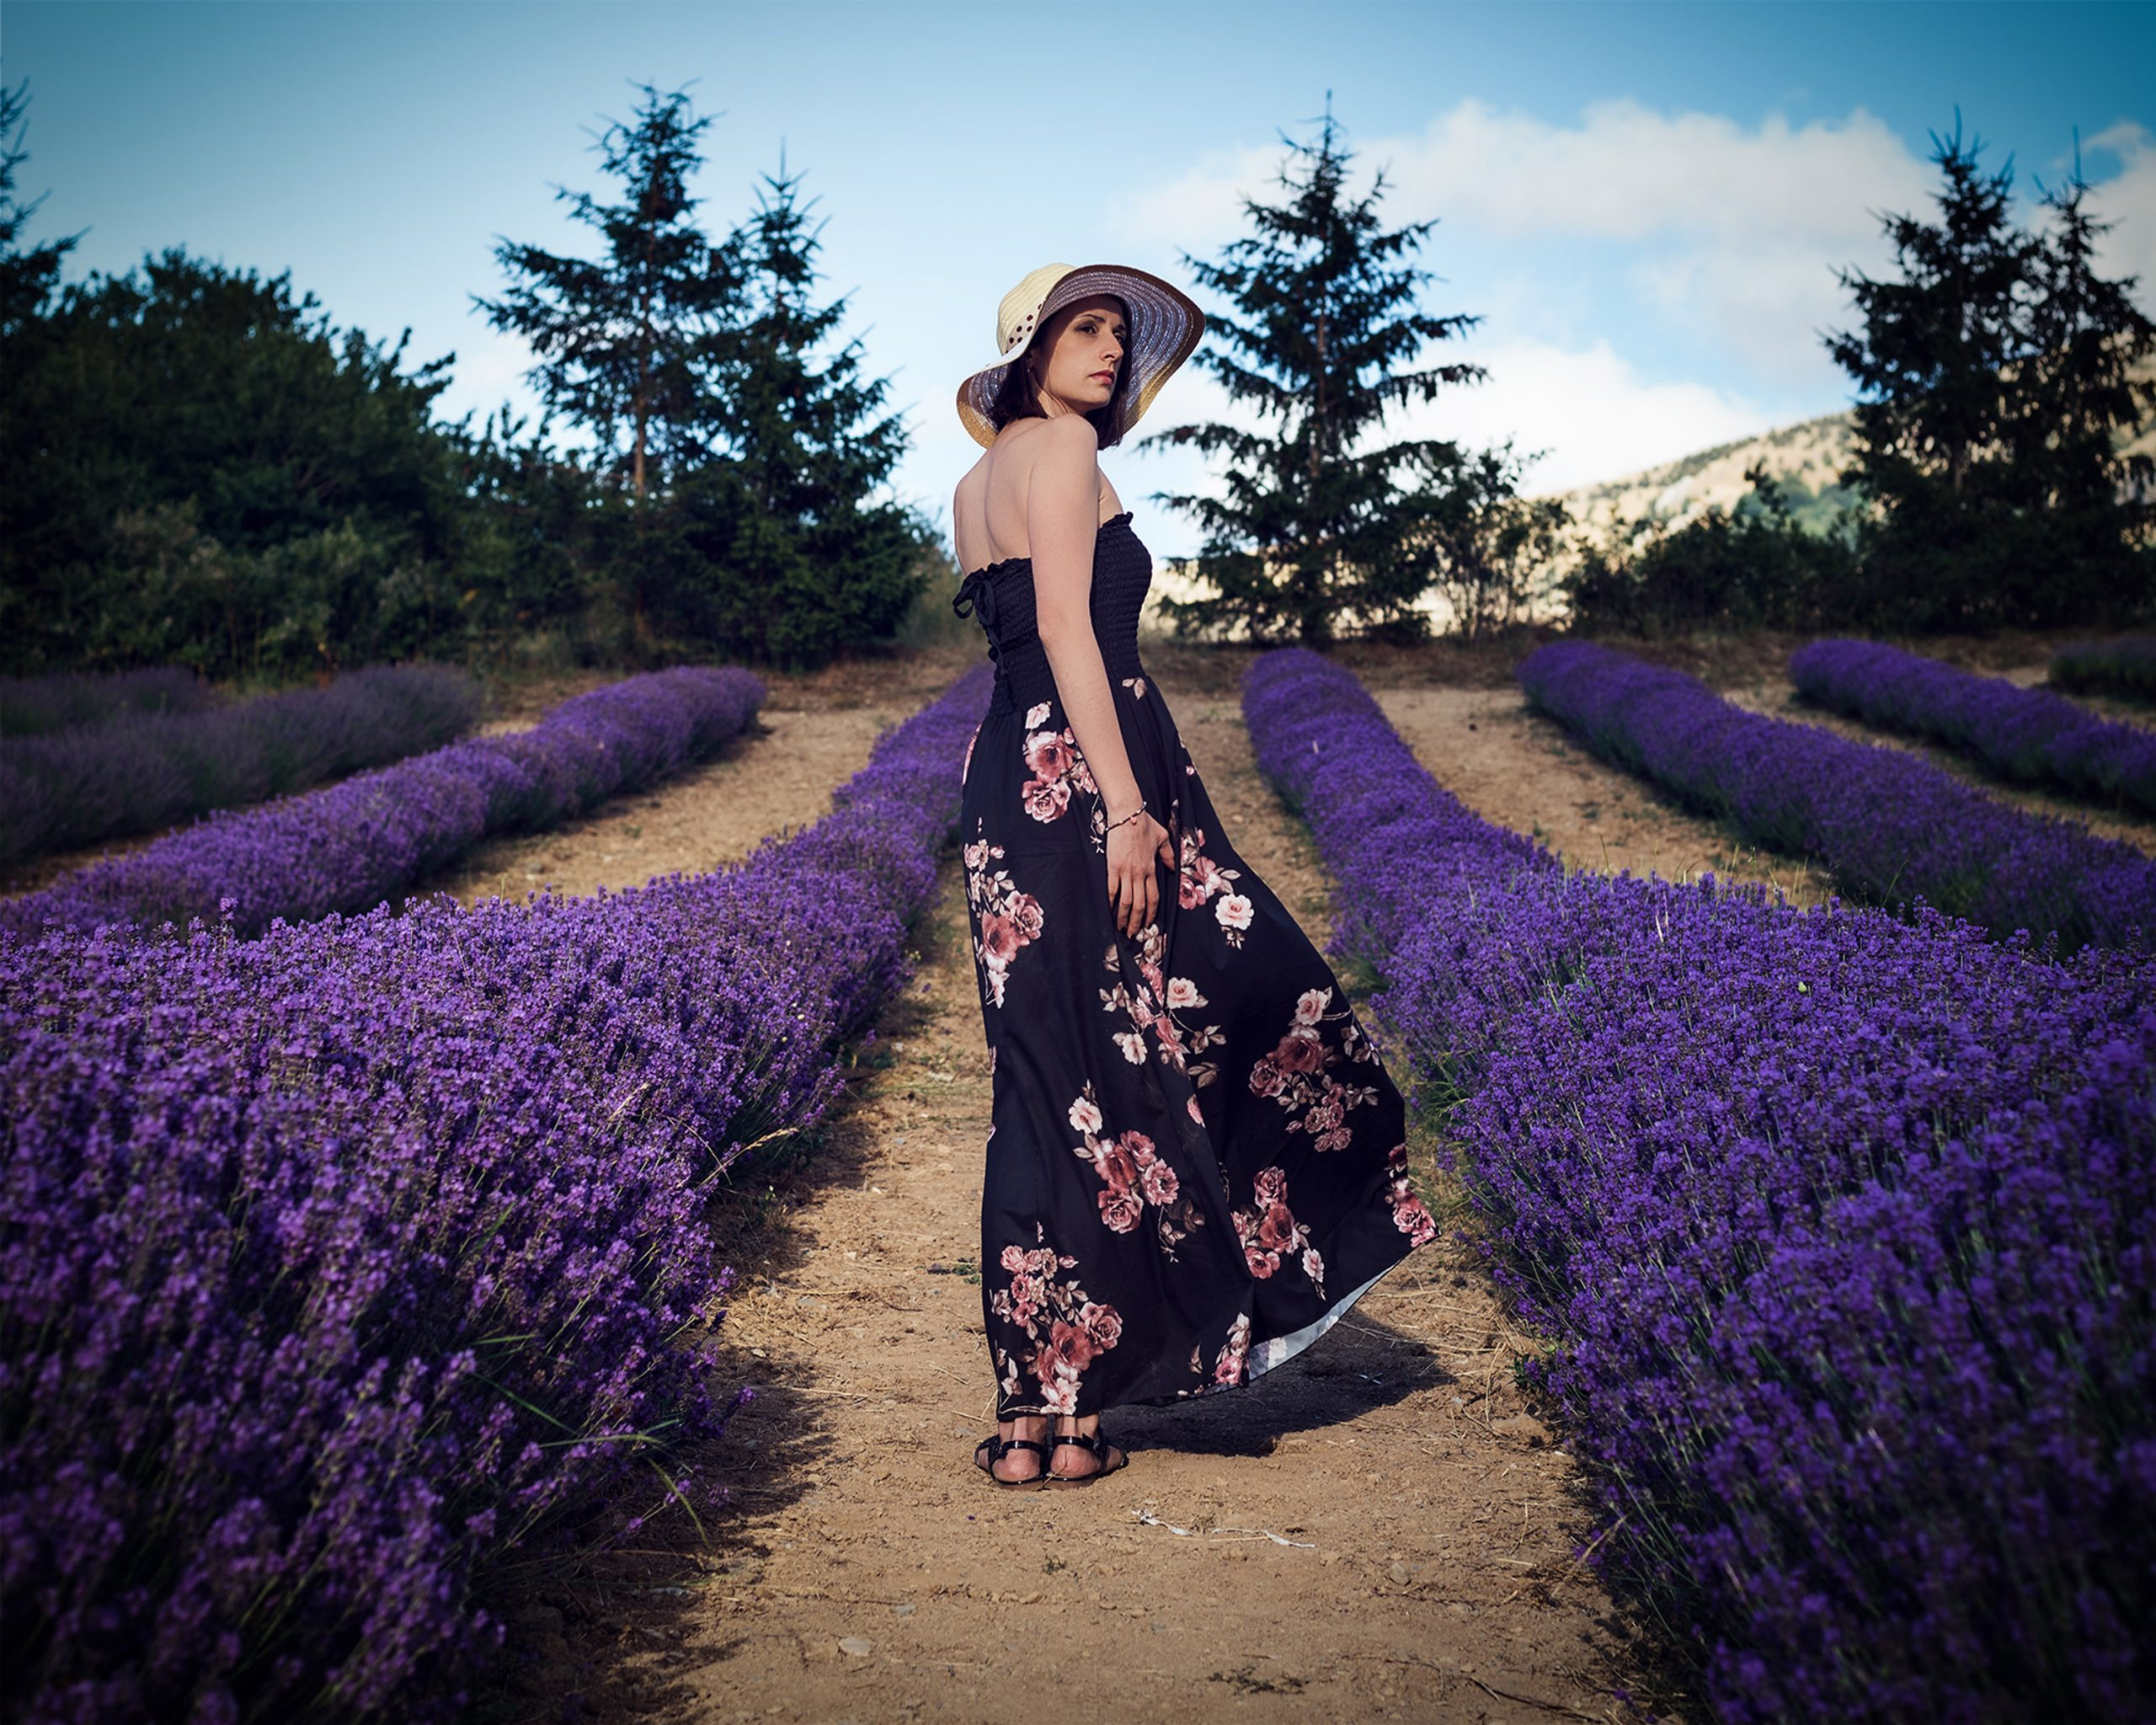 Categorie: Glamour, Landscape & Nature, Portrait; Photographer: FRANCESCO SCALZO; Model: VALERIA ROSSELLI; Location: Parco della lavanda, Contrada Barbalonga, Morano Calabro, CS, Italia